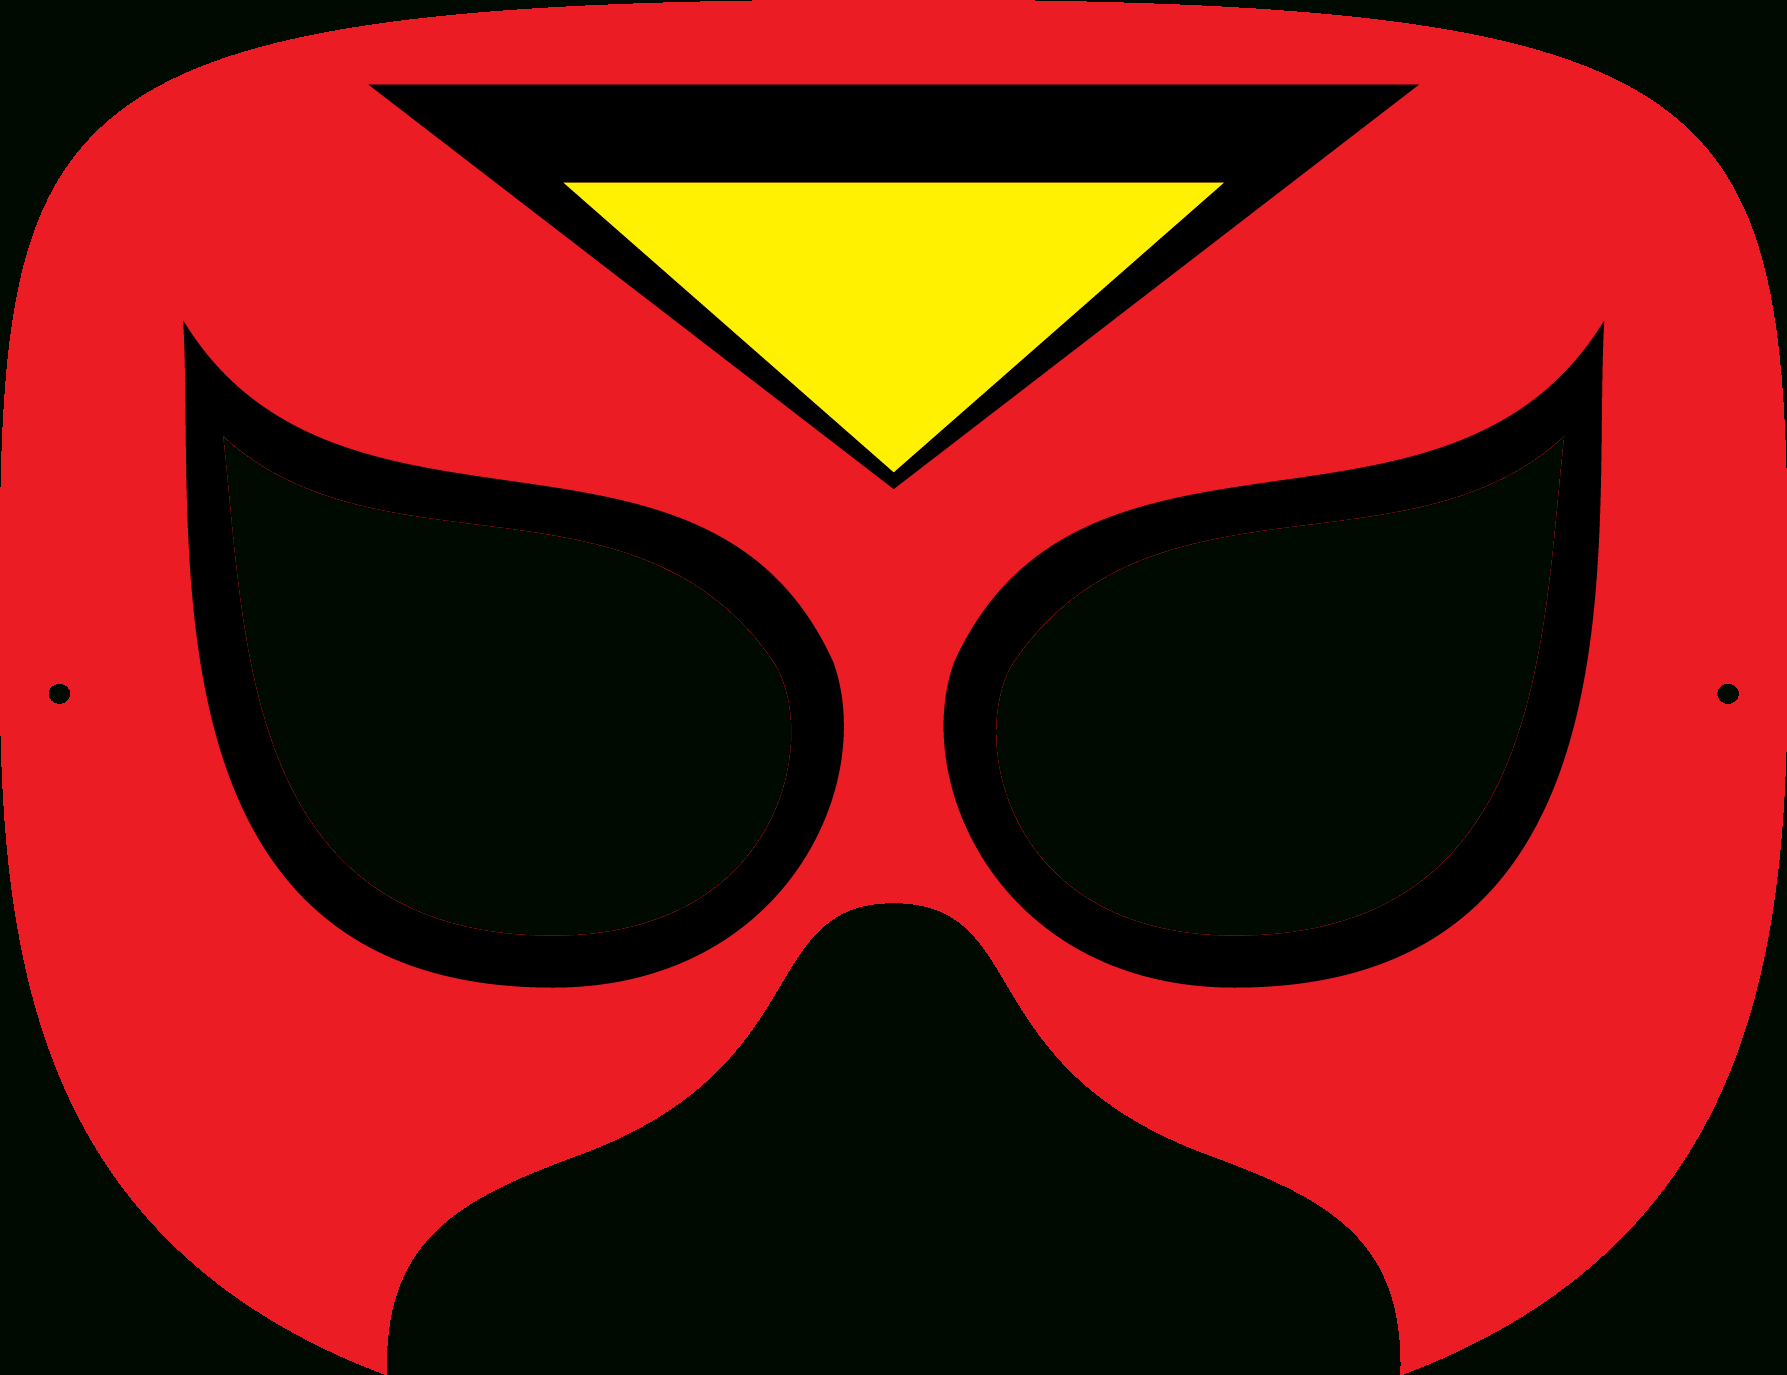 Superhero Mask Template | Free Download Best Superhero Mask Template - Free Printable Superhero Masks